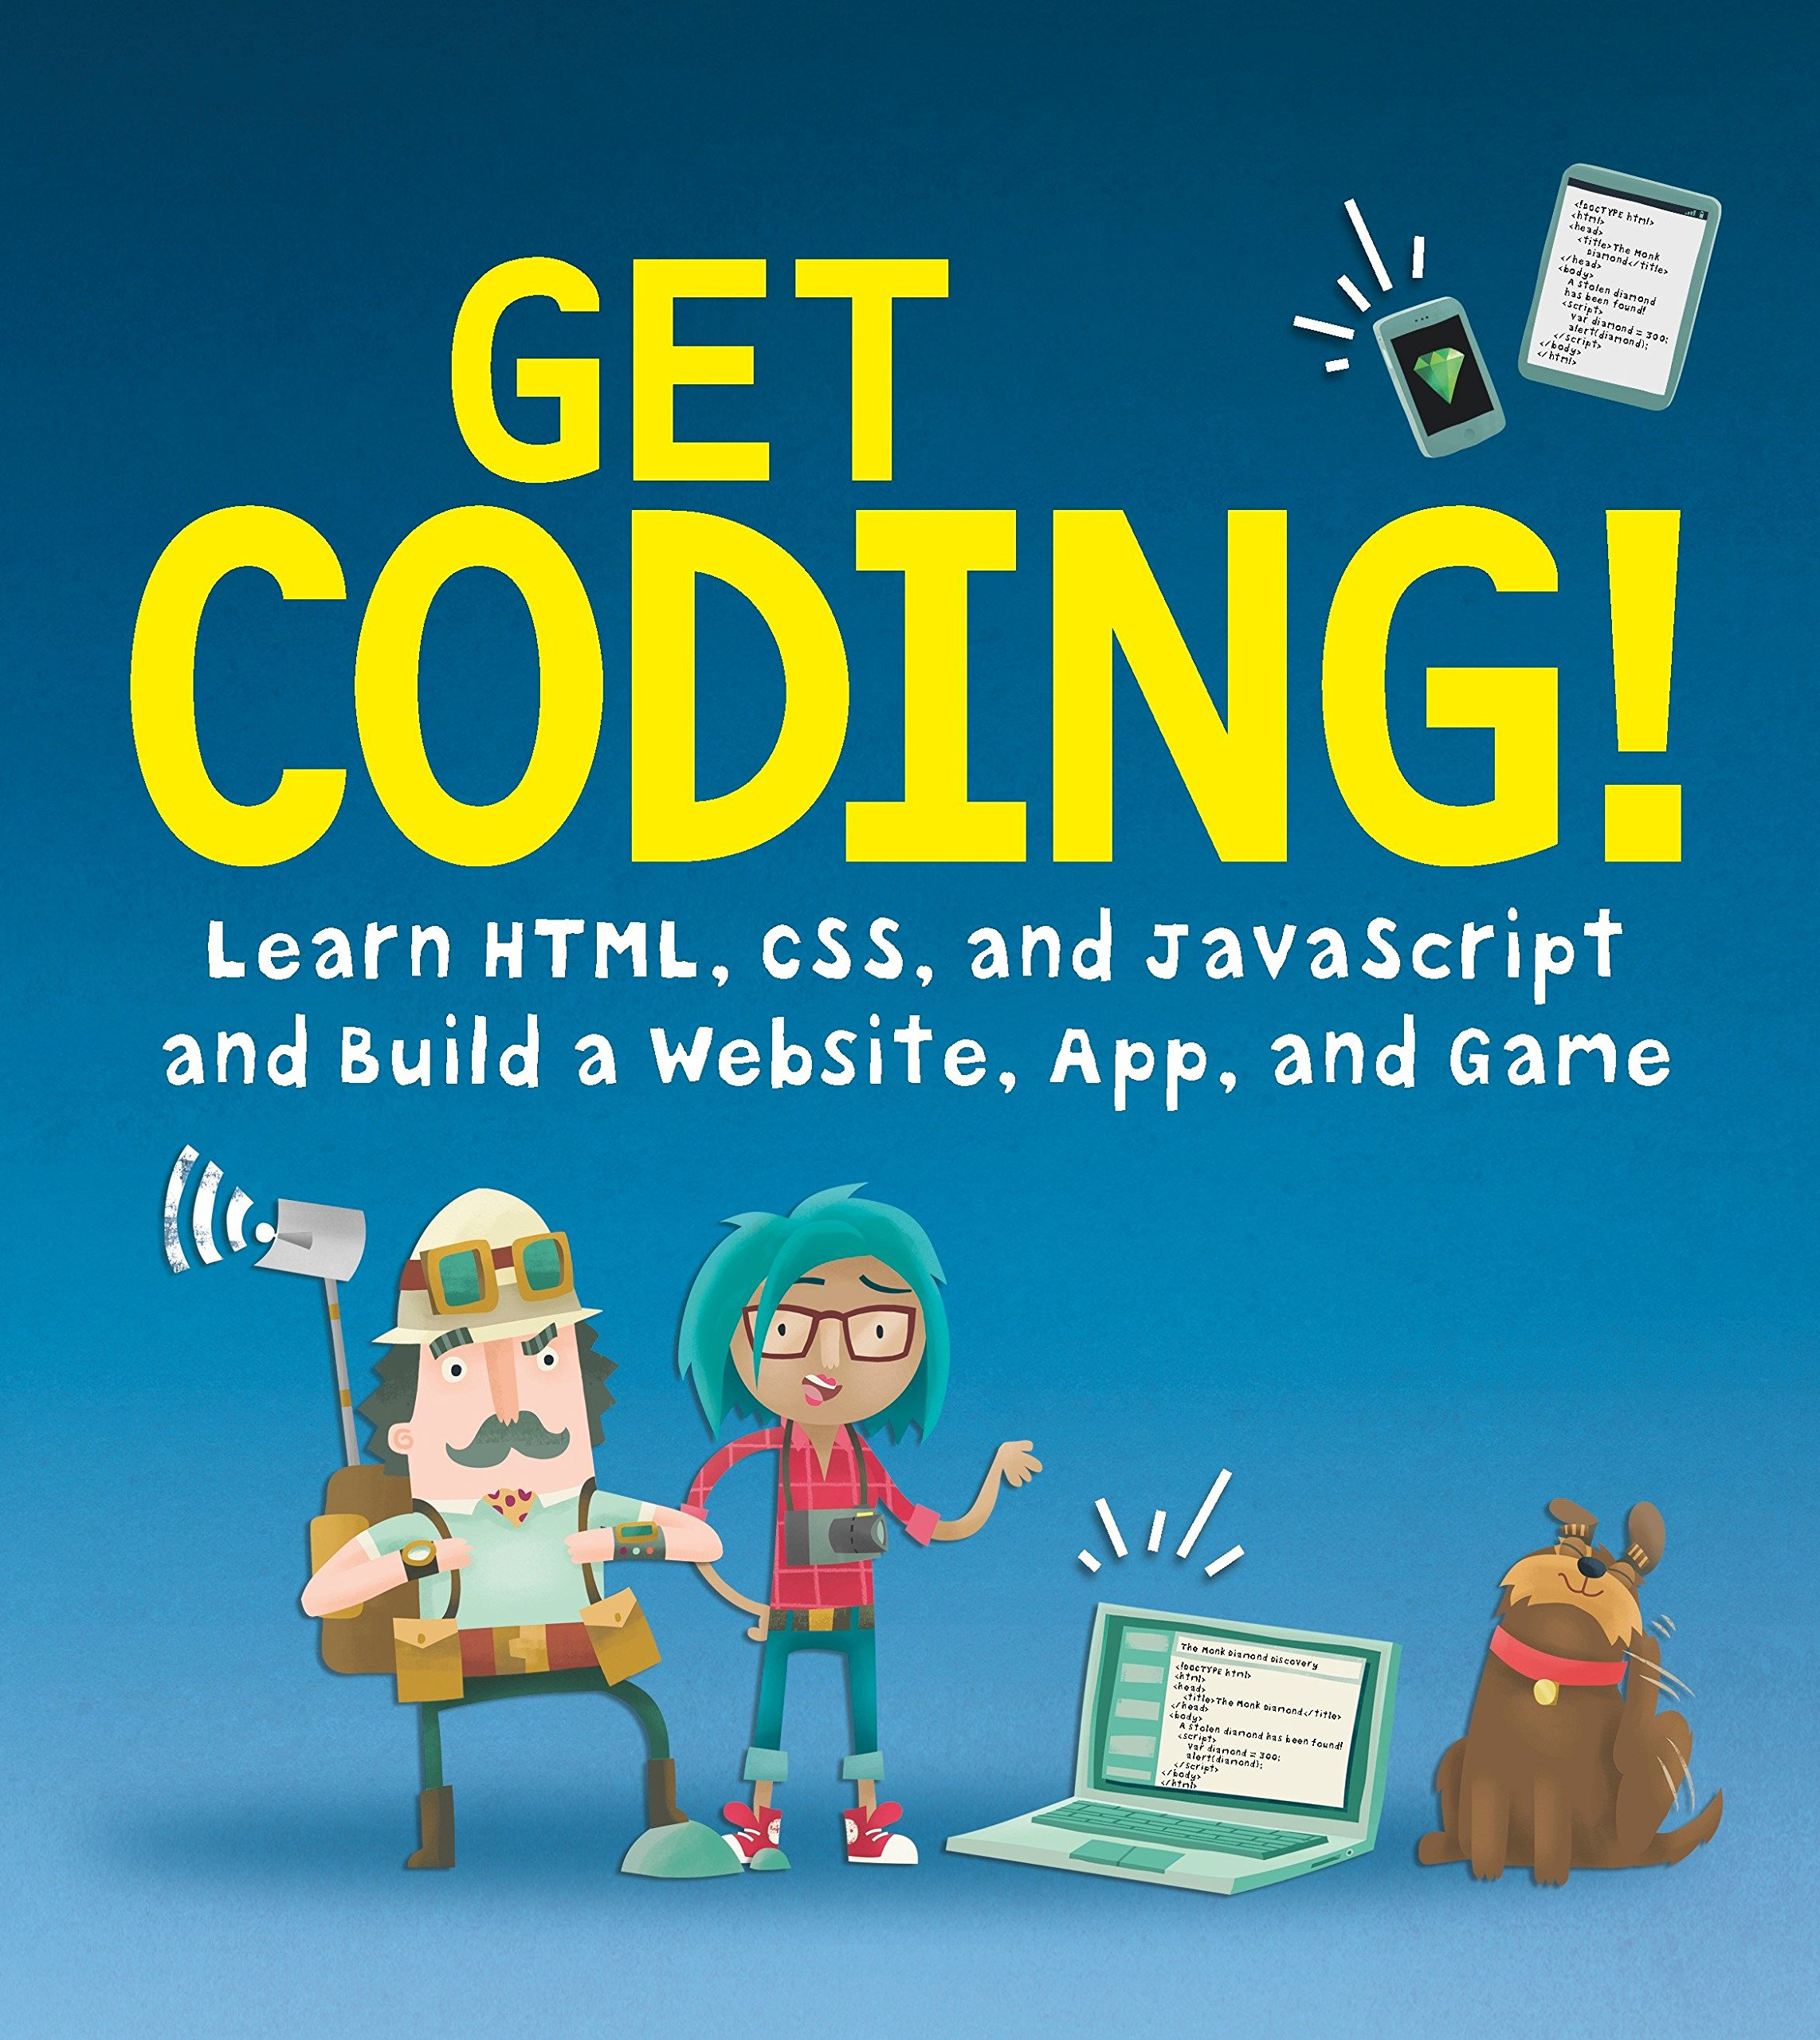 Get Coding! Learn HTML, CSS, and JavaScript and Build a Website, App, and Game by Candlewick (Image #1)